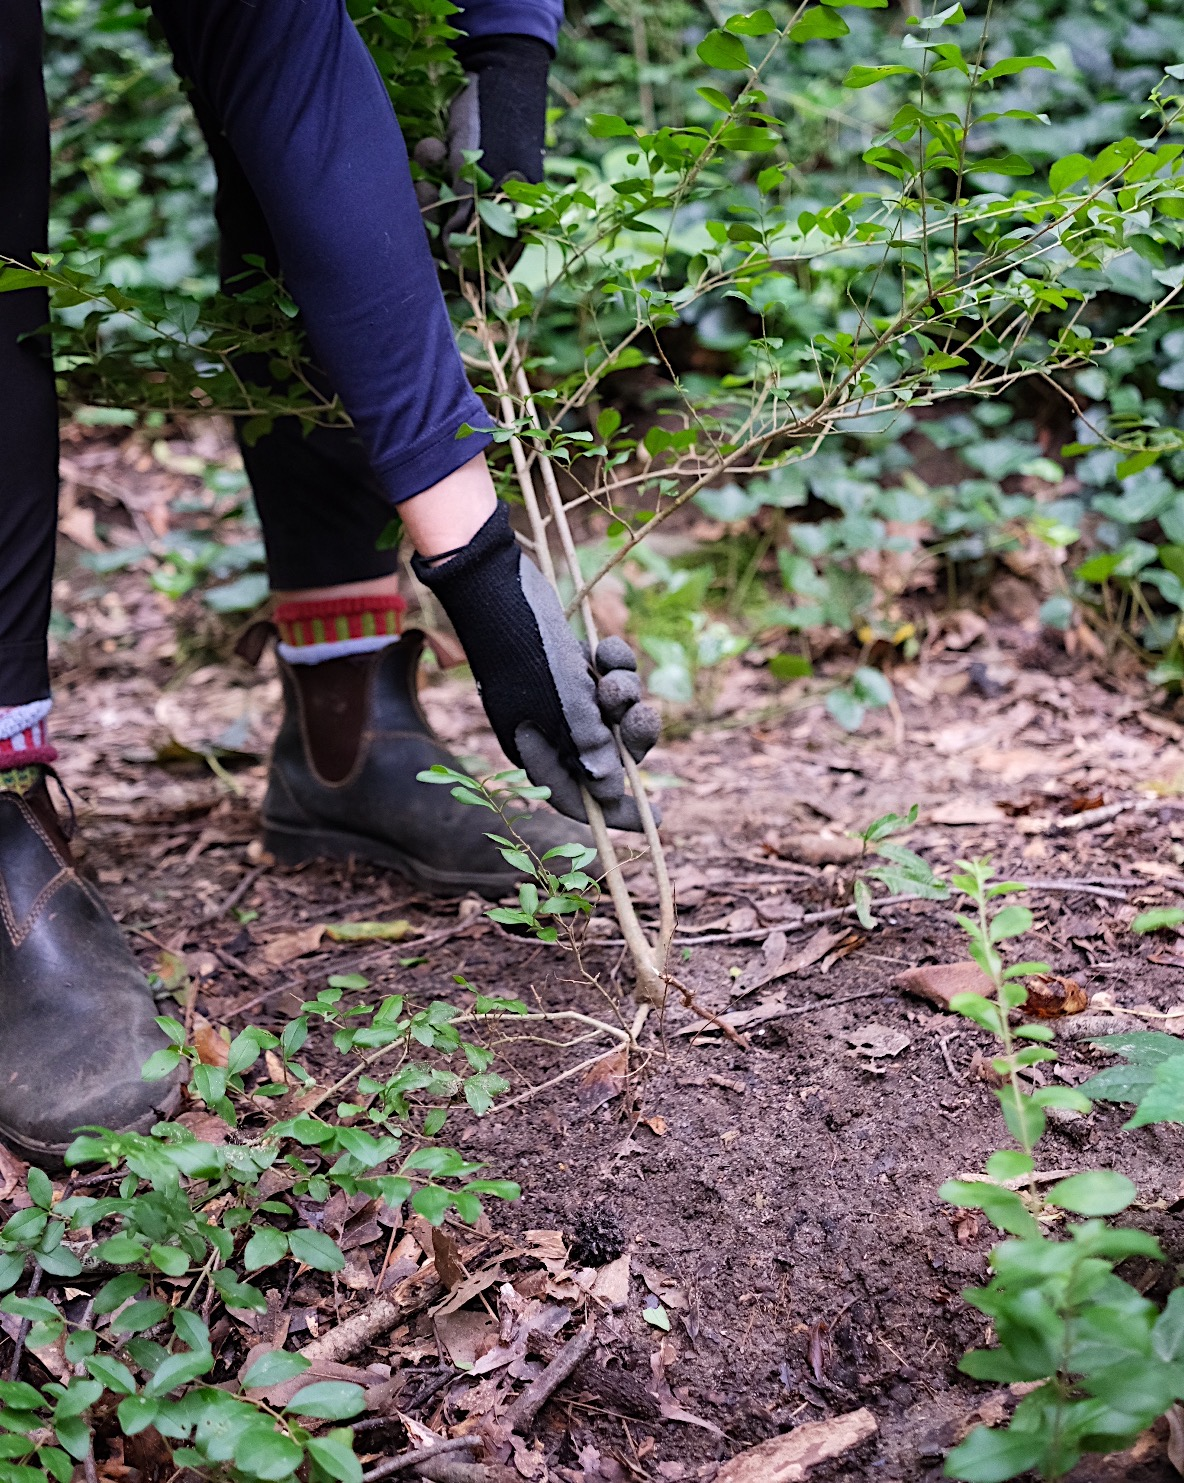 Pulling out privet from the ground